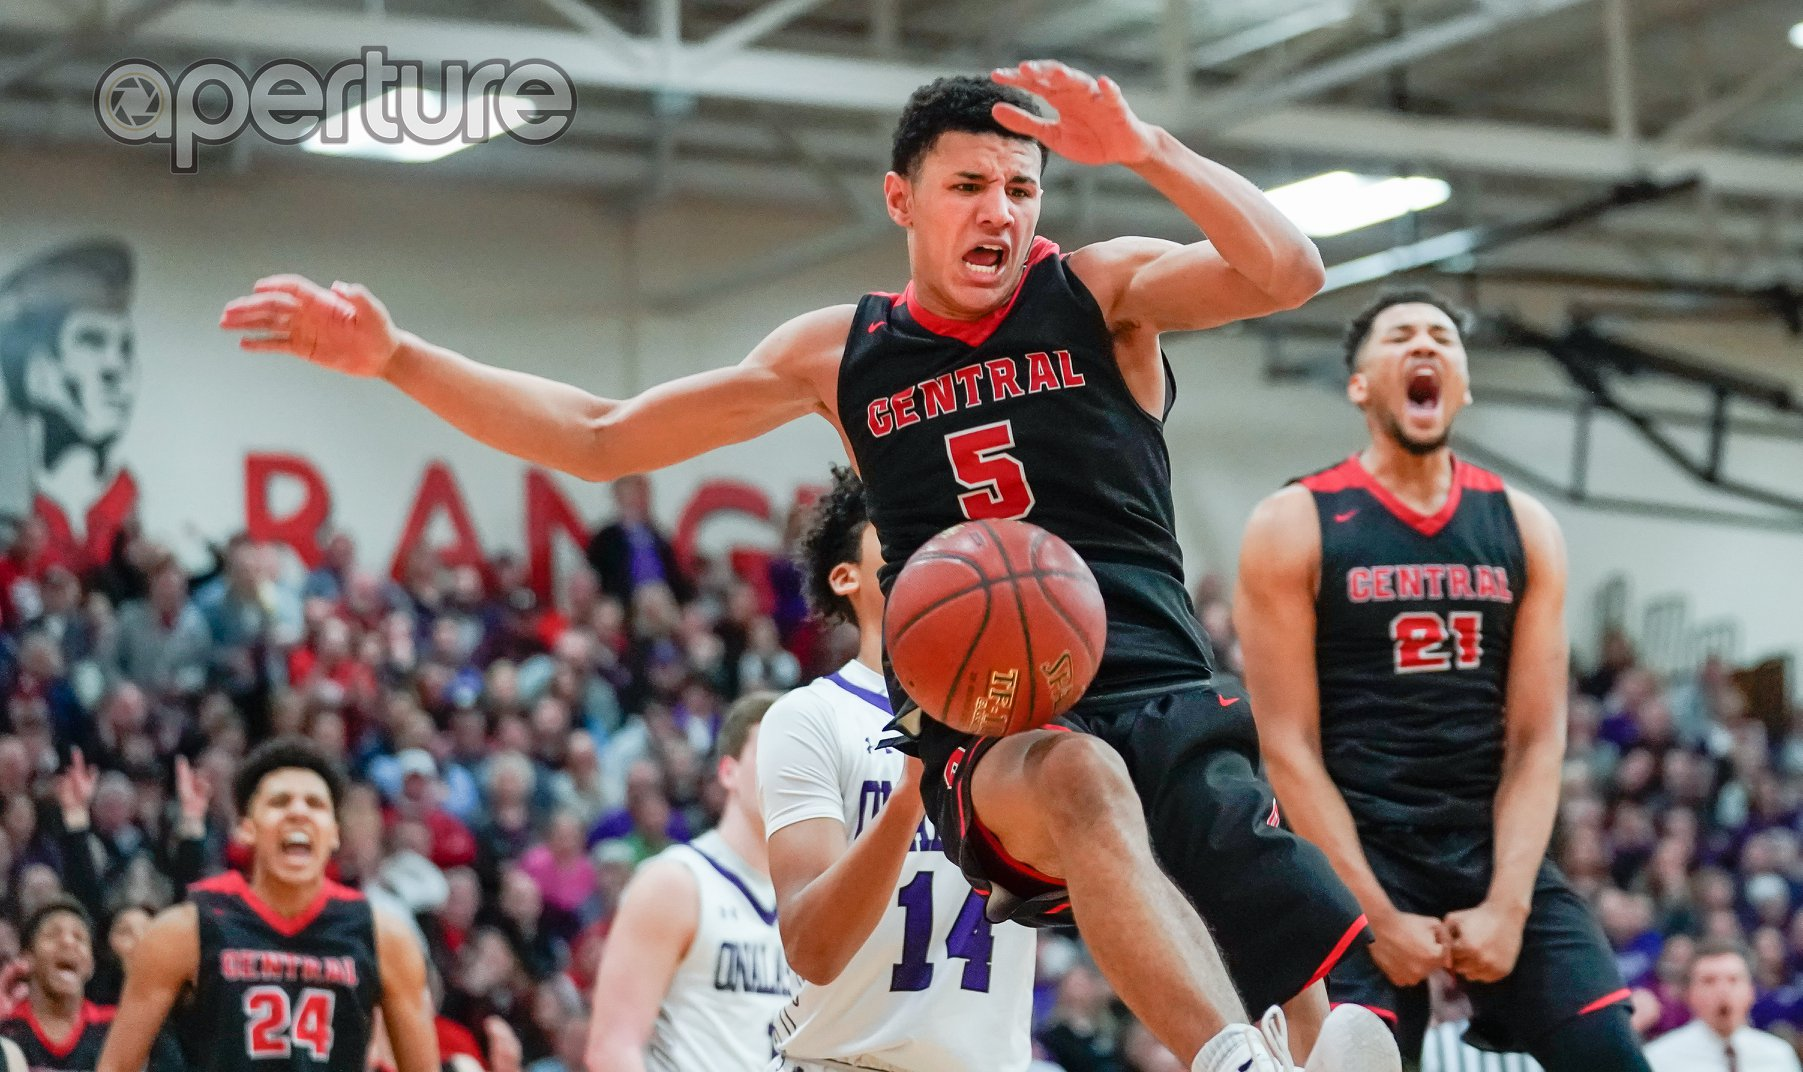 Central's Davis unanimous decision for first team AP all-state